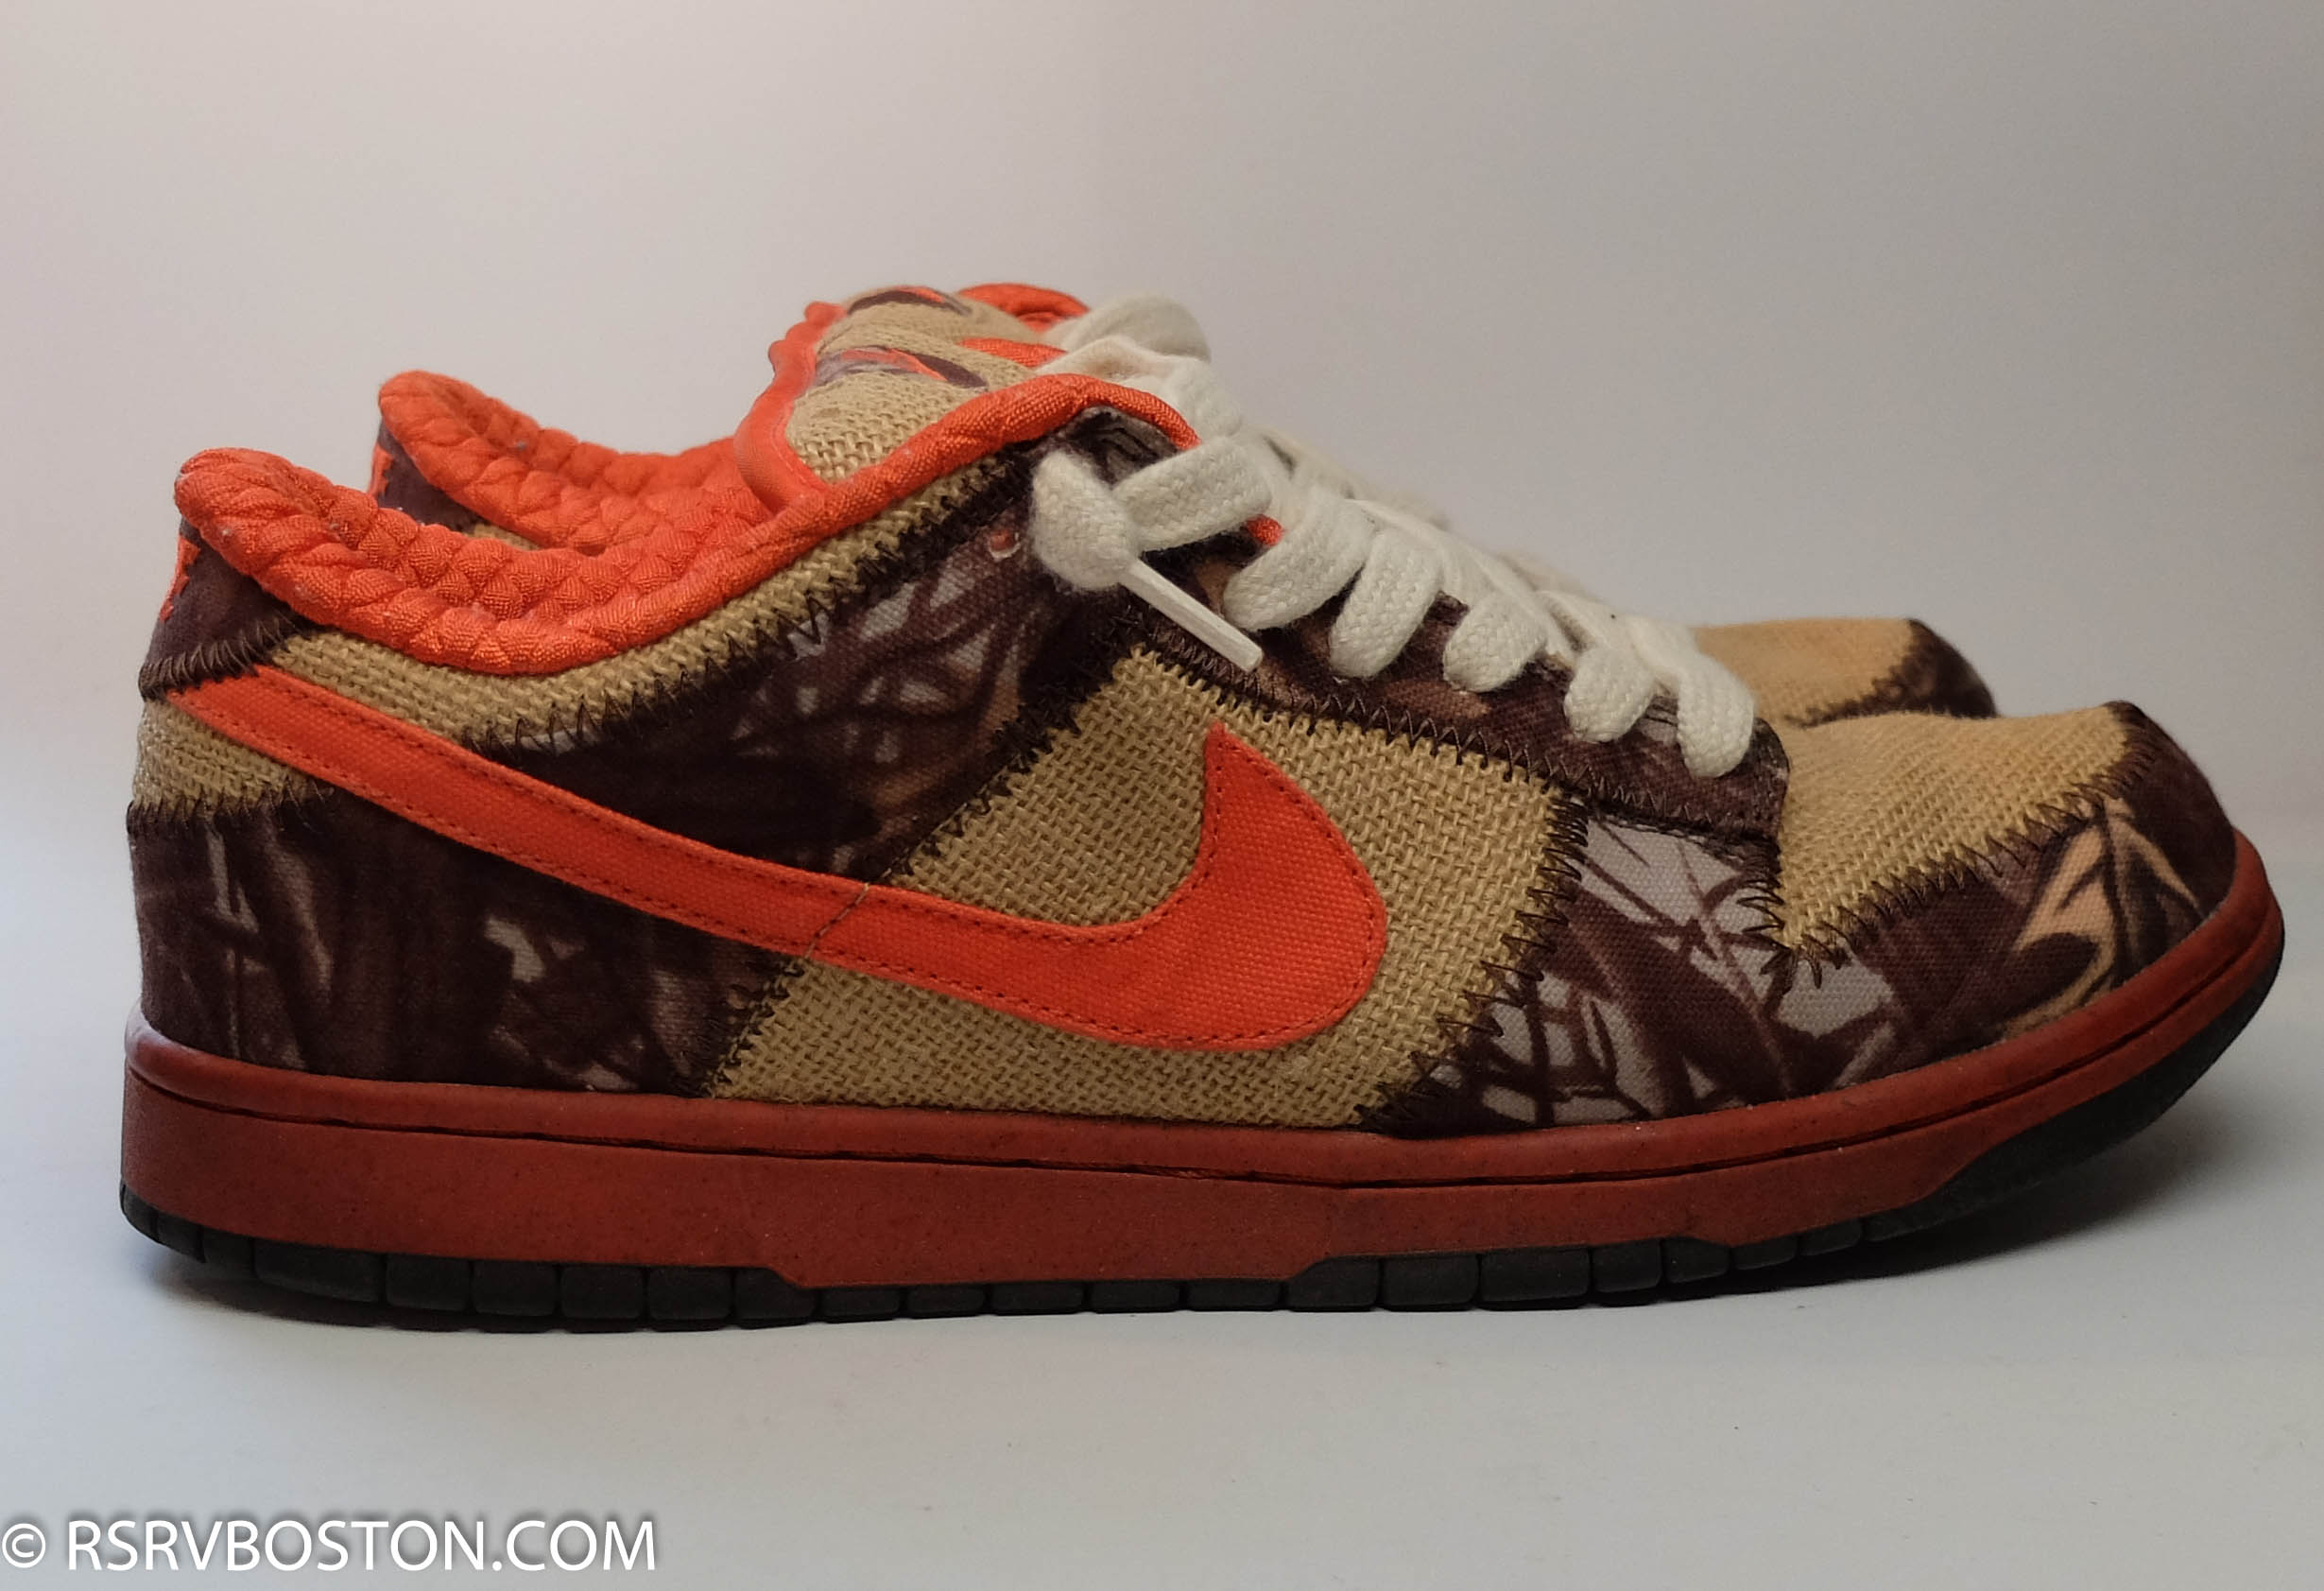 finest selection 41f47 ba78c Nike Dunk Low Pro SB Natural Burlap Orange Blaze Reese Forbes Hunter Size  13 - Low-Top Sneakers for Sale - Grailed